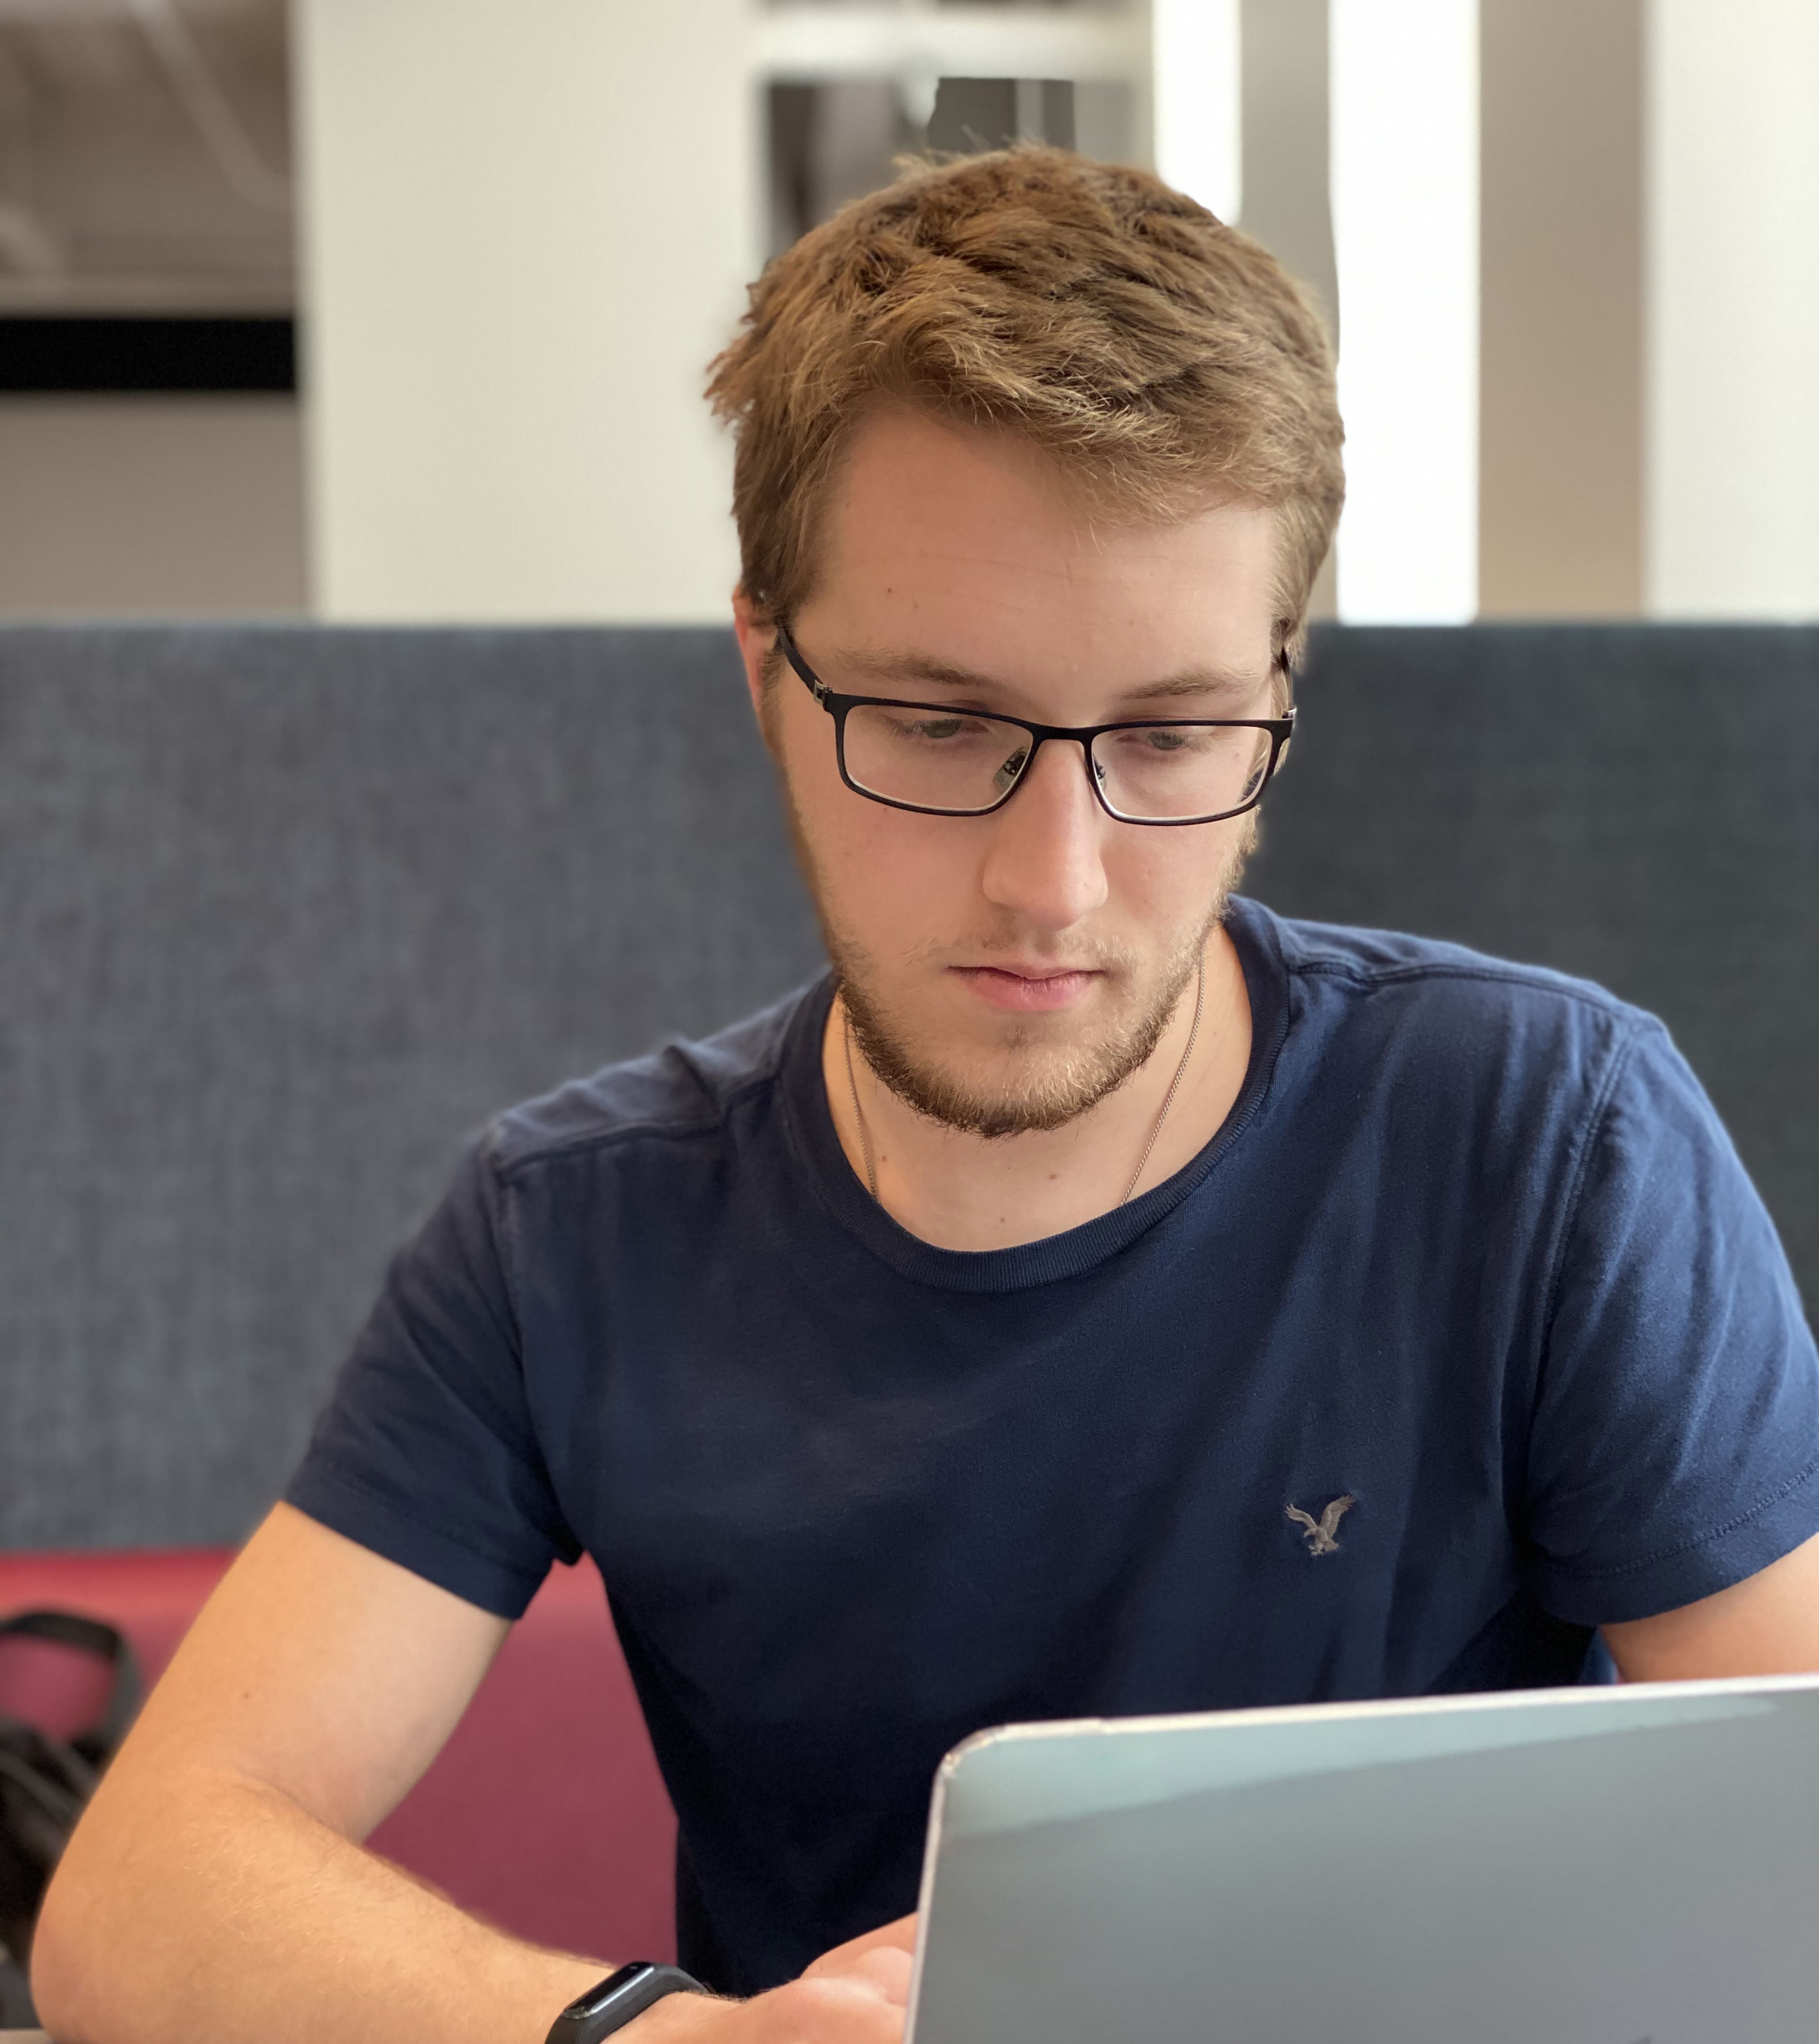 College of Science and Technology student on laptop